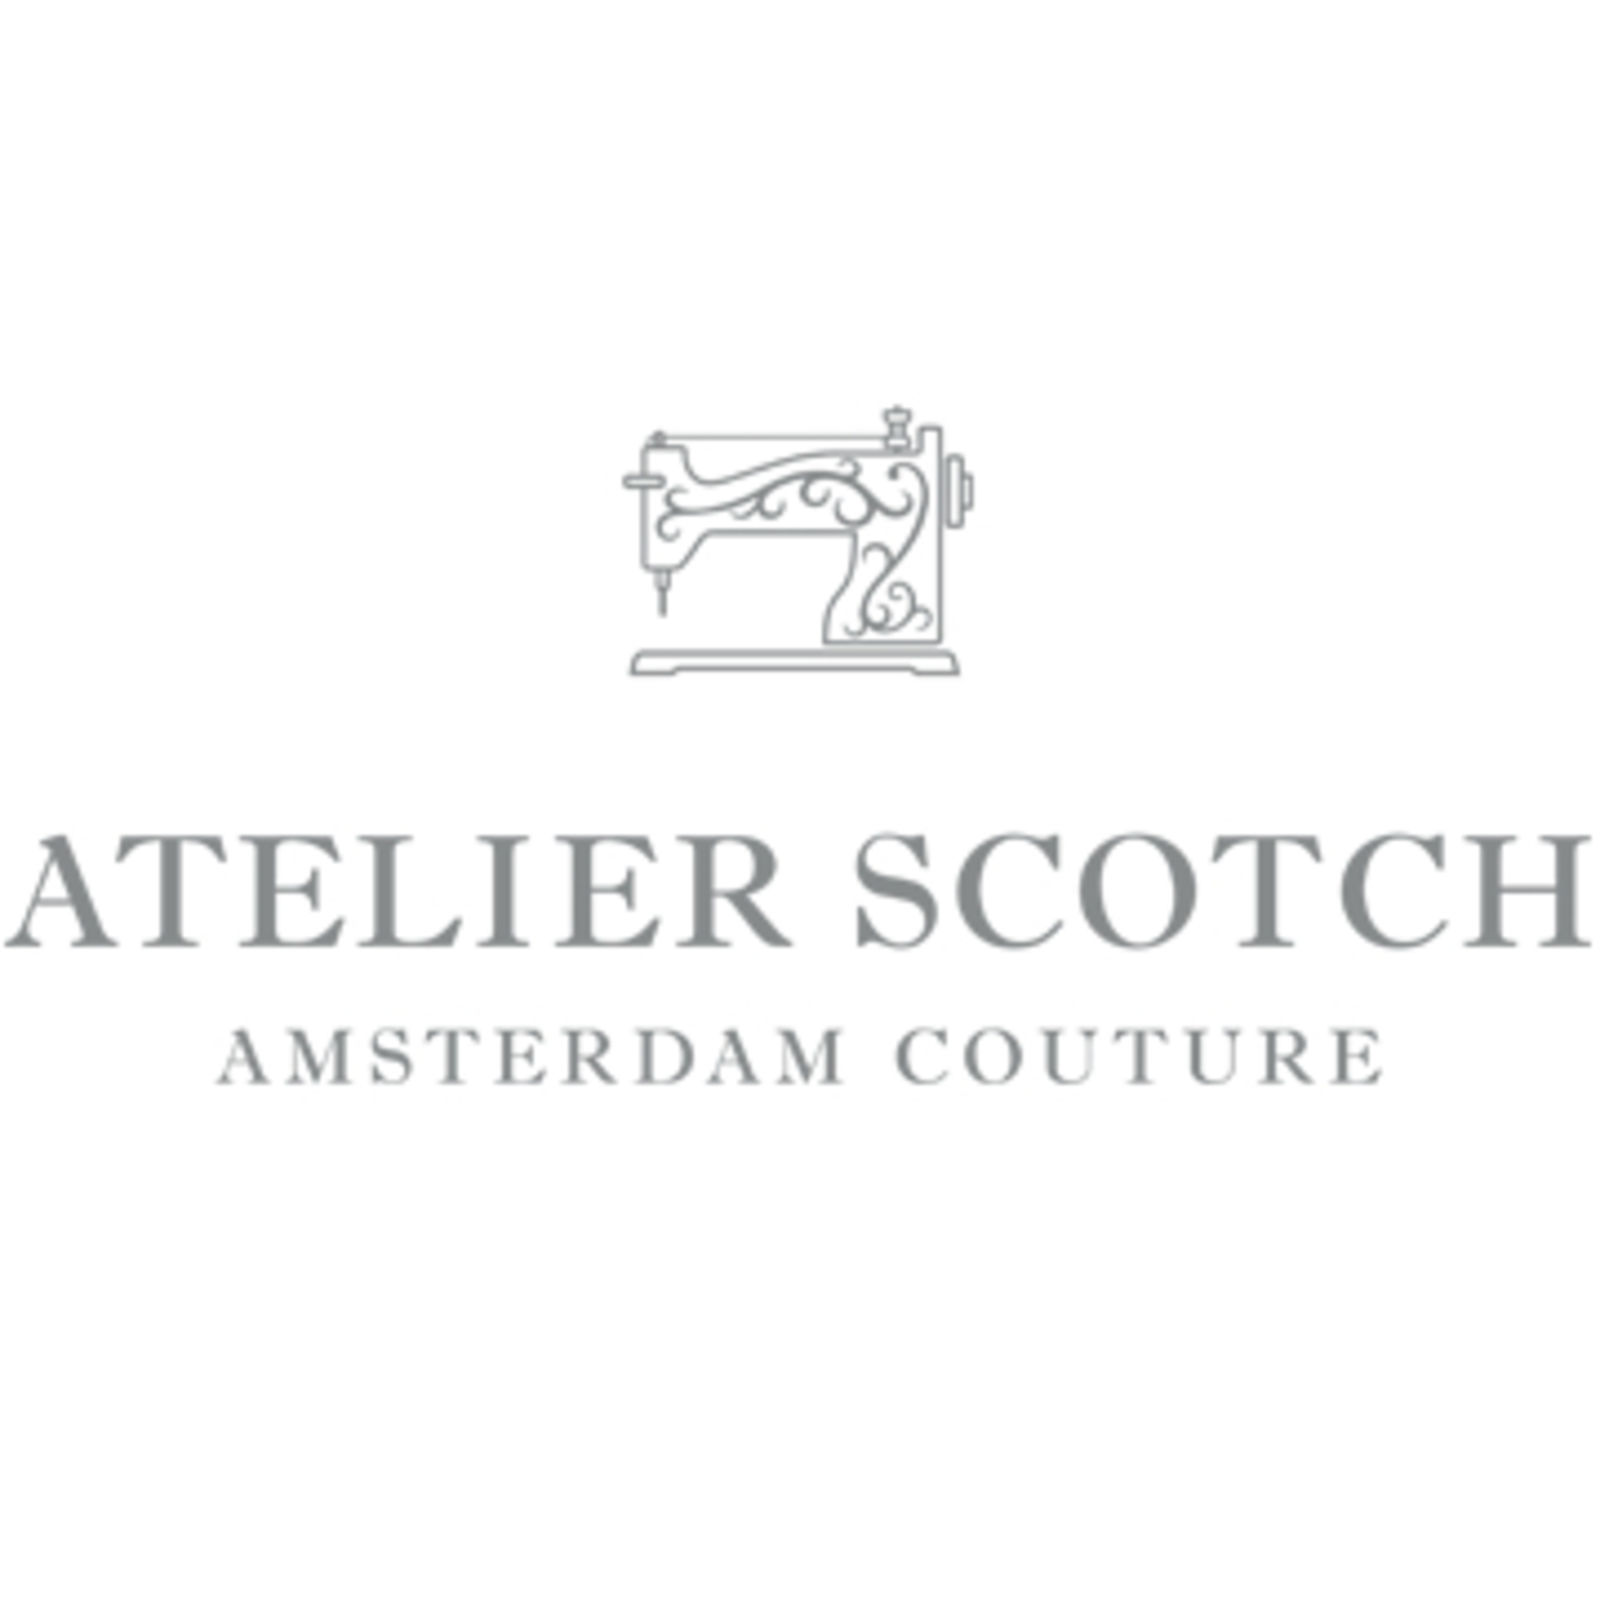 ATELIER SCOTCH (Image 1)